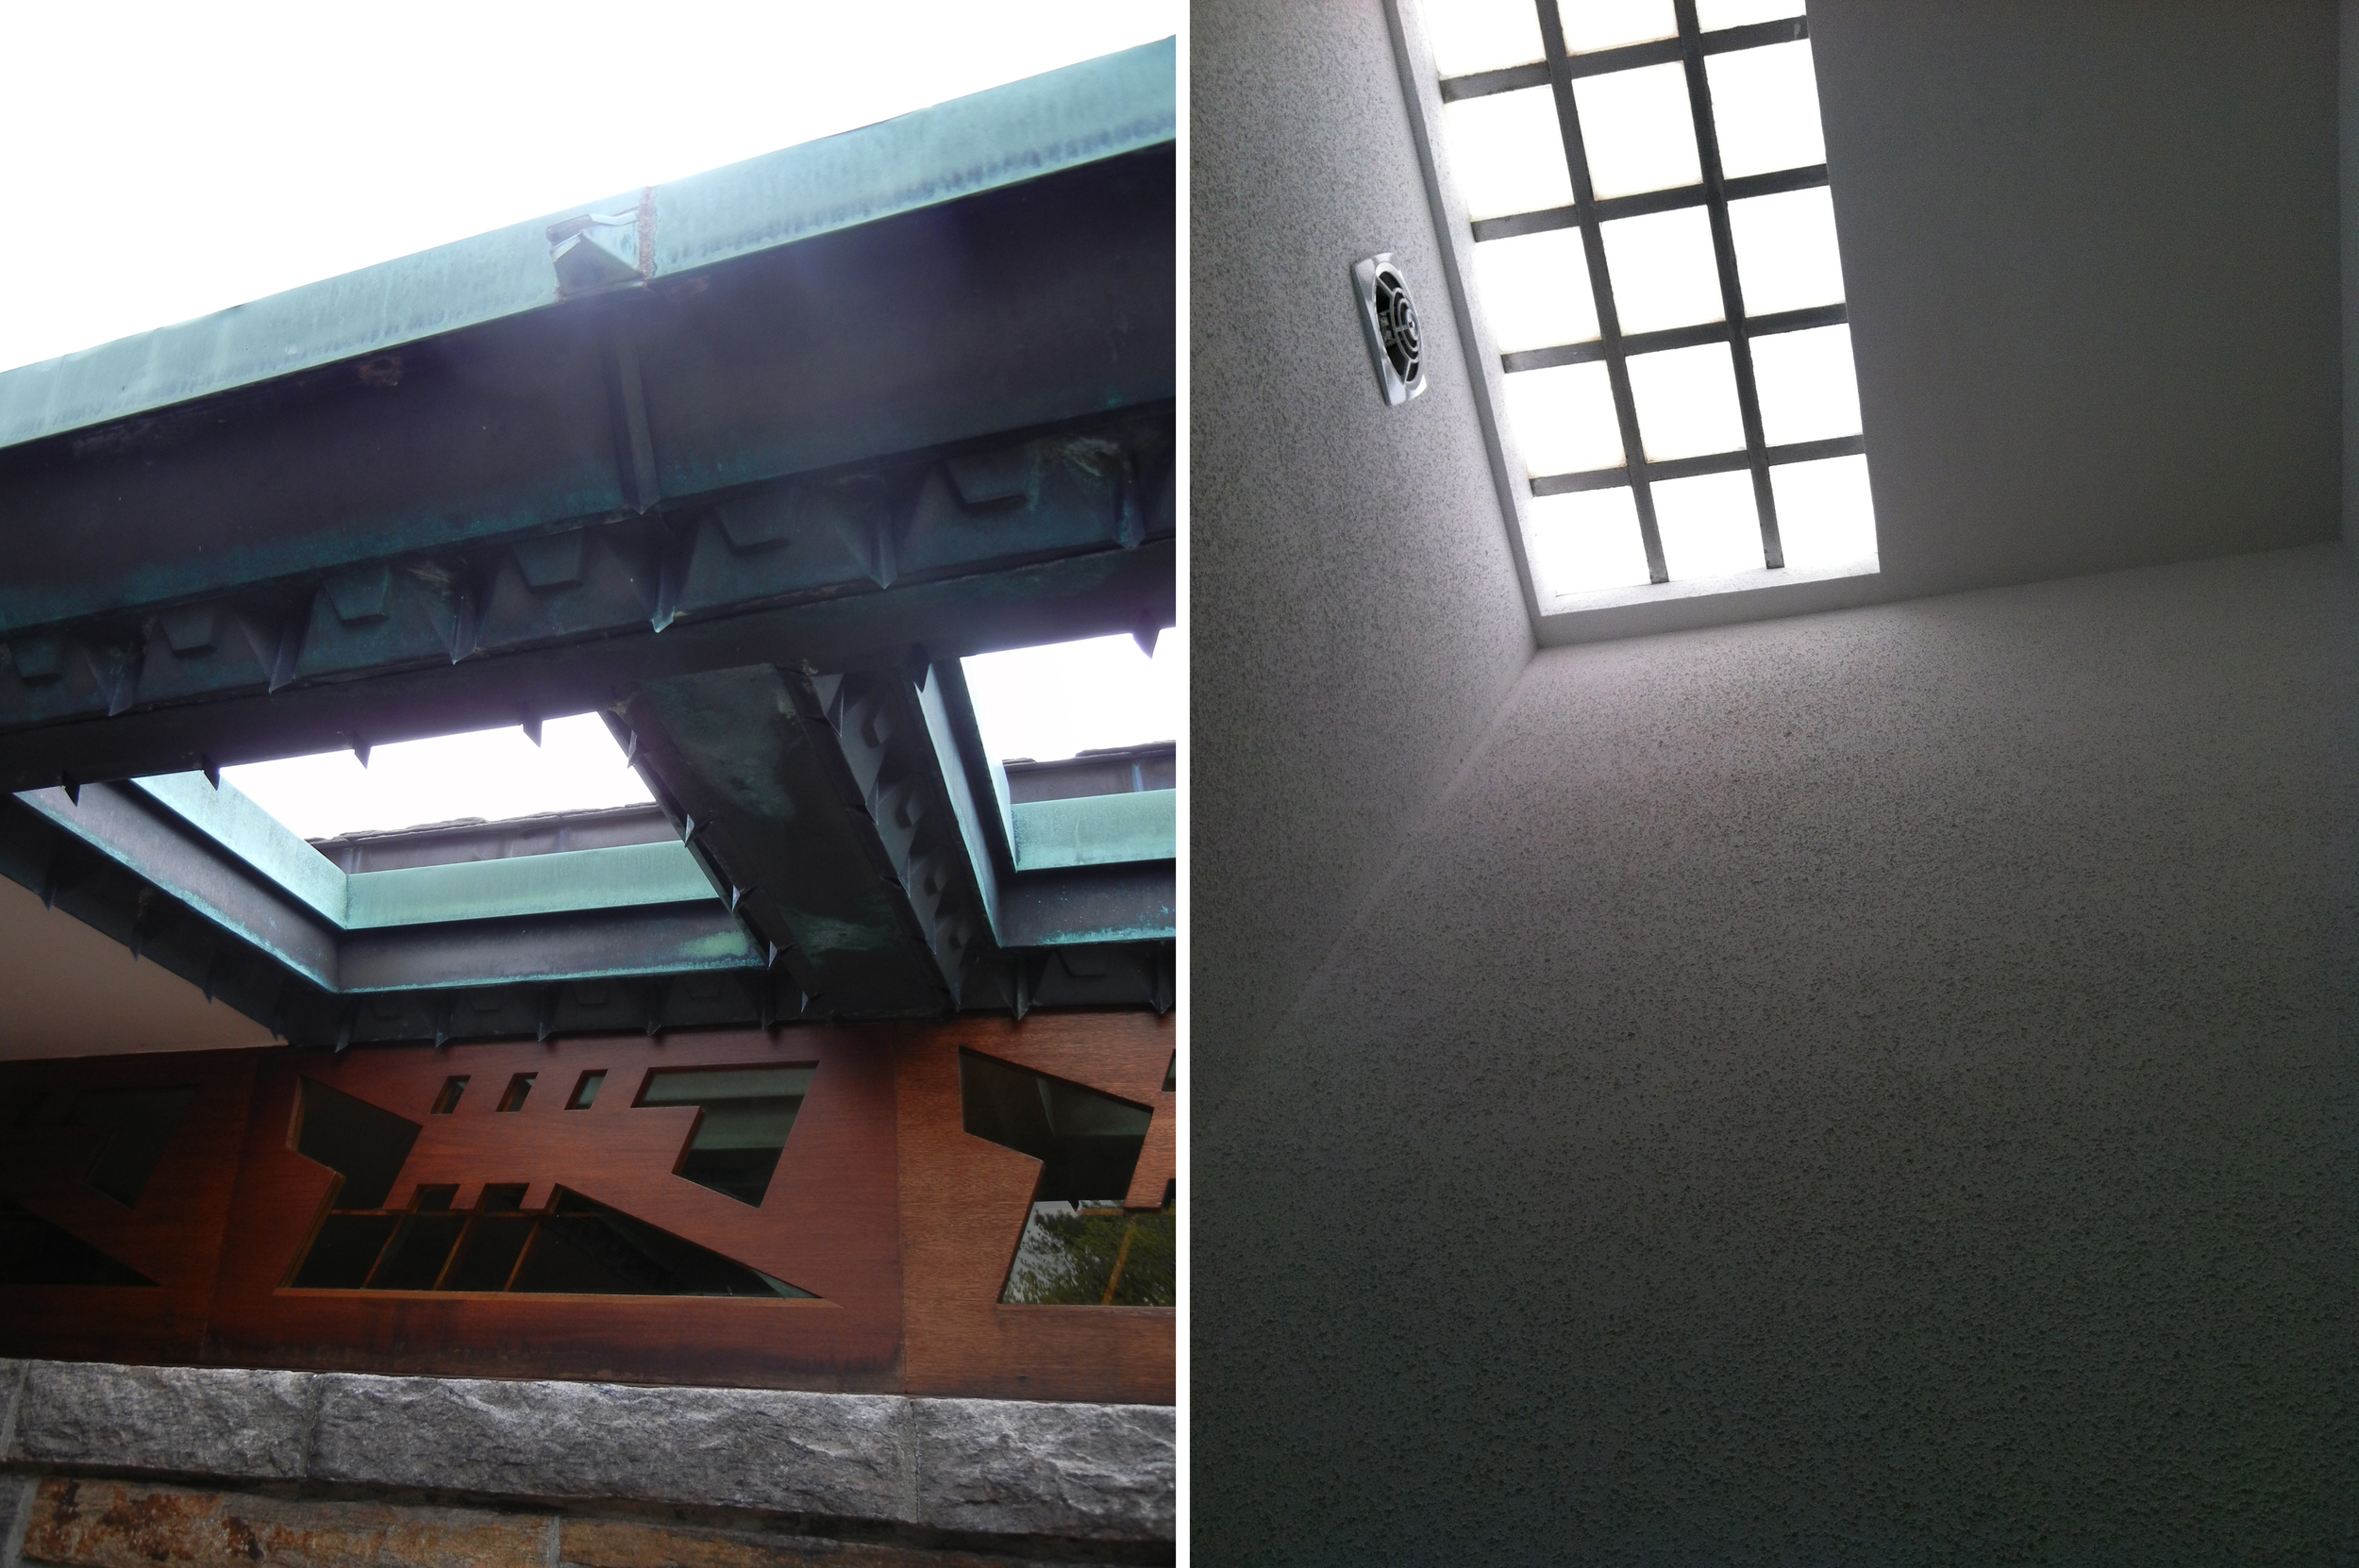 a skylight in the eaves of Frank Lloyd Wright residence and a skylight in the bathroom